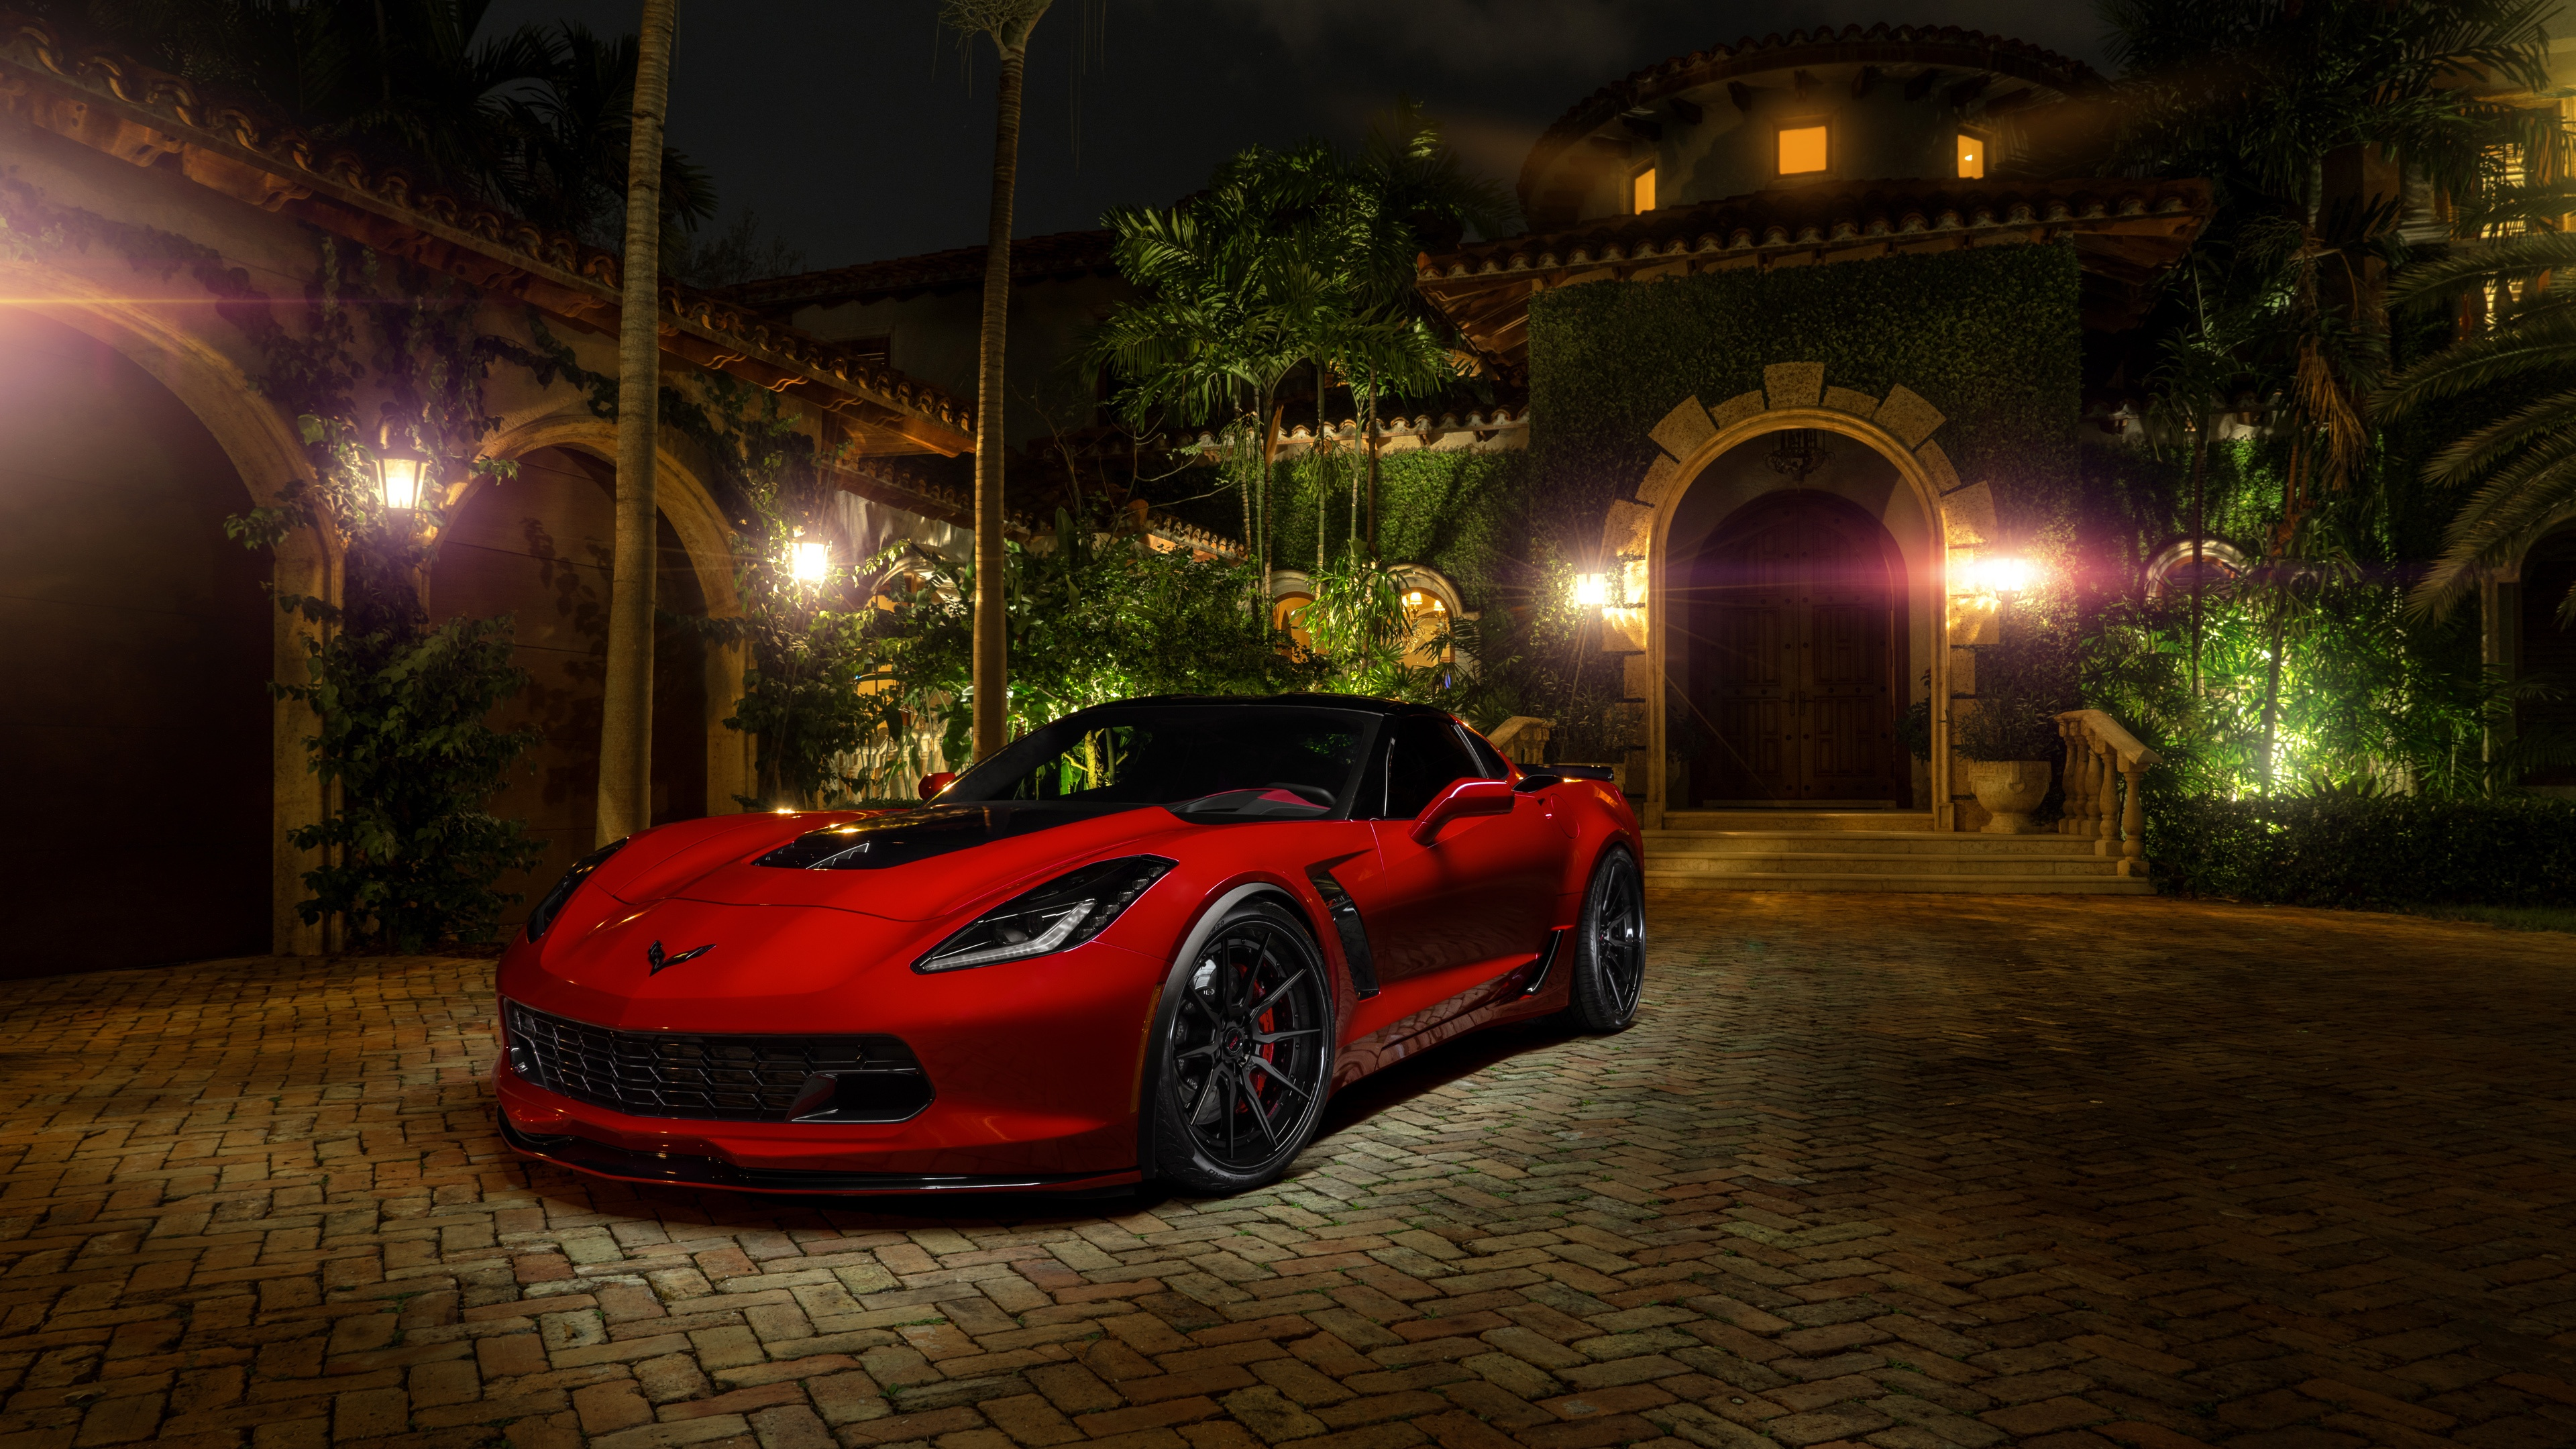 Adv1 chevrolet corvette c7 z06 wallpaper hd car wallpapers